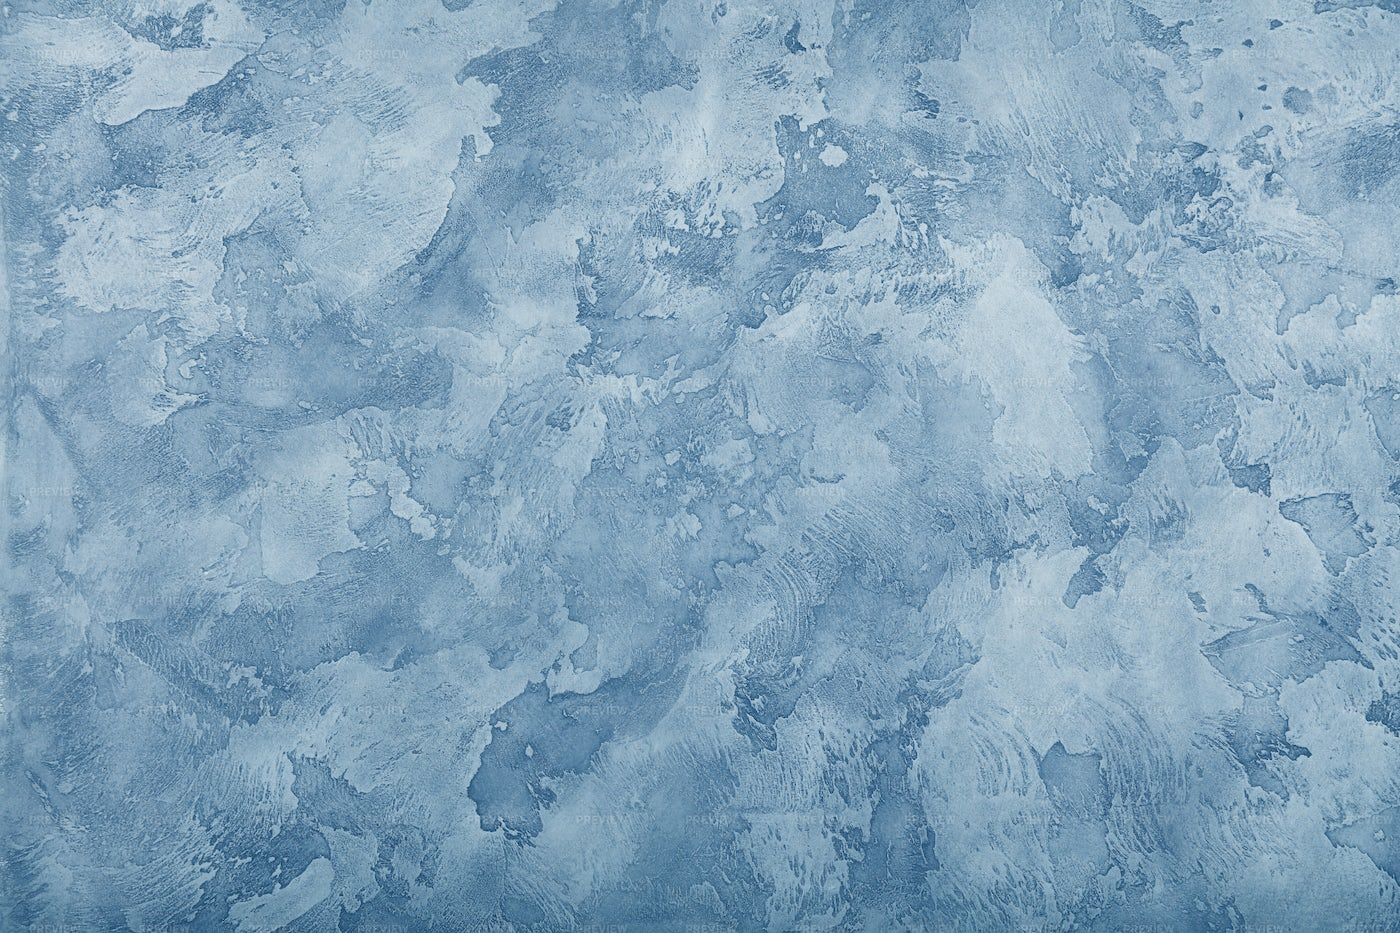 Blue Painted Plaster Wall: Stock Photos